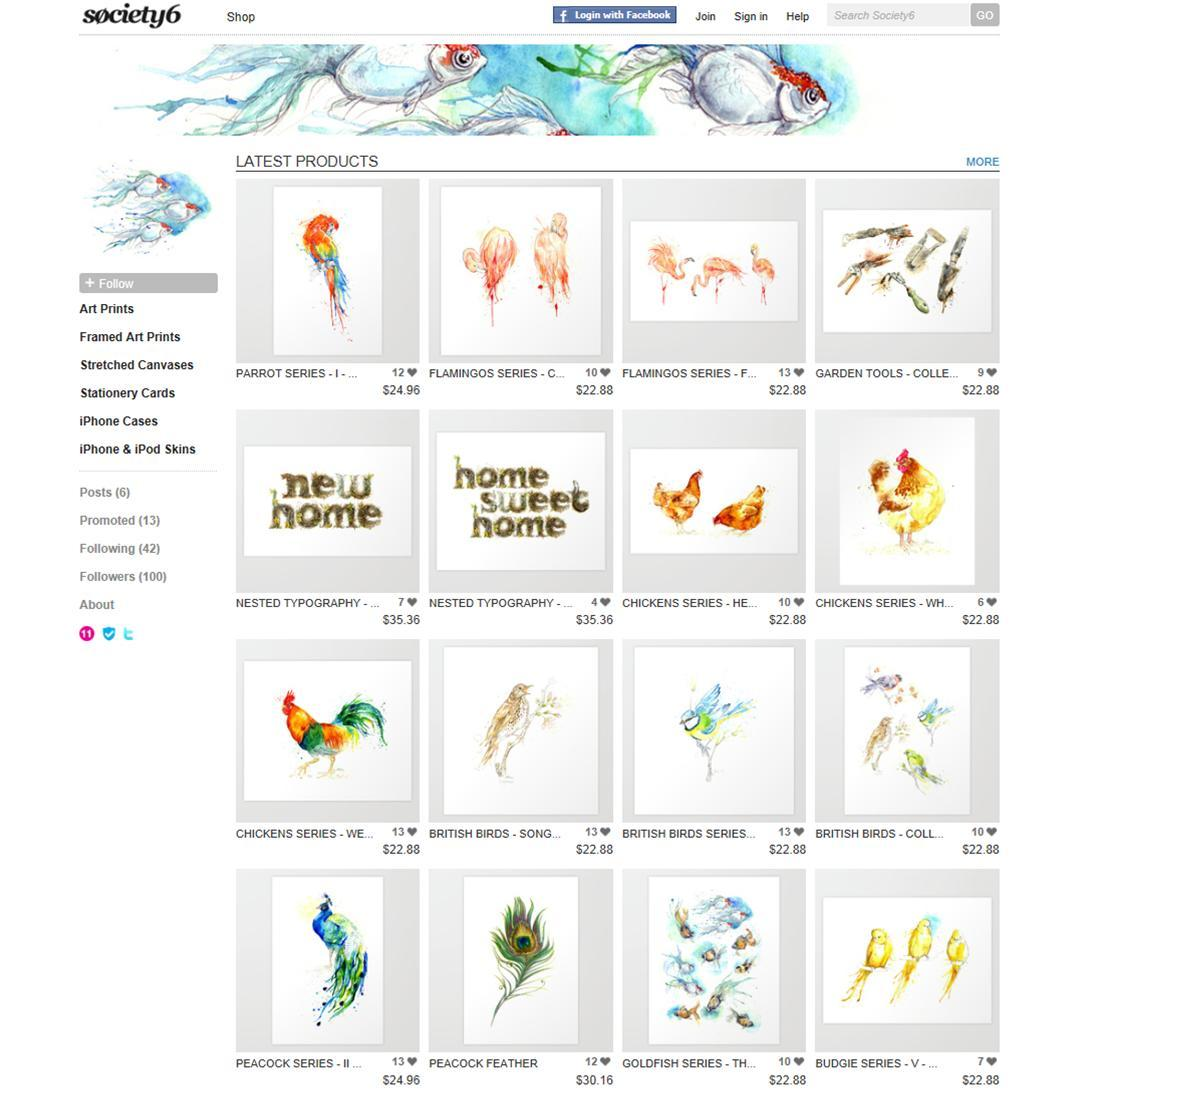 I have been adding more prints & products (packs of greetings cards, iPhone/iPod cases, T-shirts) to my shop on Society6 lately. You can find it here!For today only there is also free shipping! when you use this link: http://society6.com/amyholliday?promo=586bbb If there are any pieces that you would like to buy as a print/pack of greetings cards/iPod/iPhone case or T-shirt that are not on the site yet, let me know and I will do my best to make it available for you!